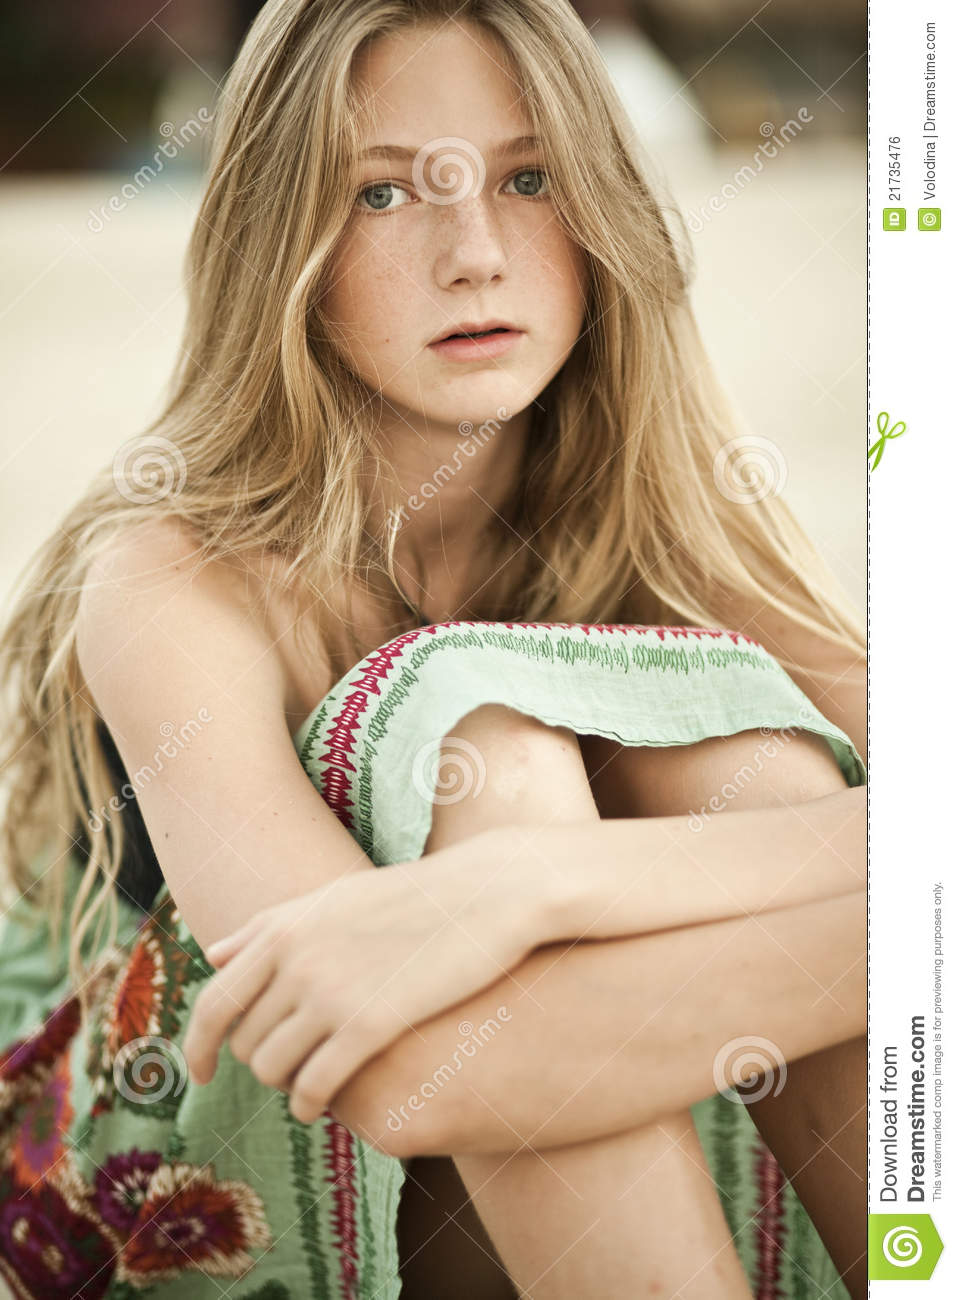 Portrait Of A Girl Teen With Freckles Stock Photo